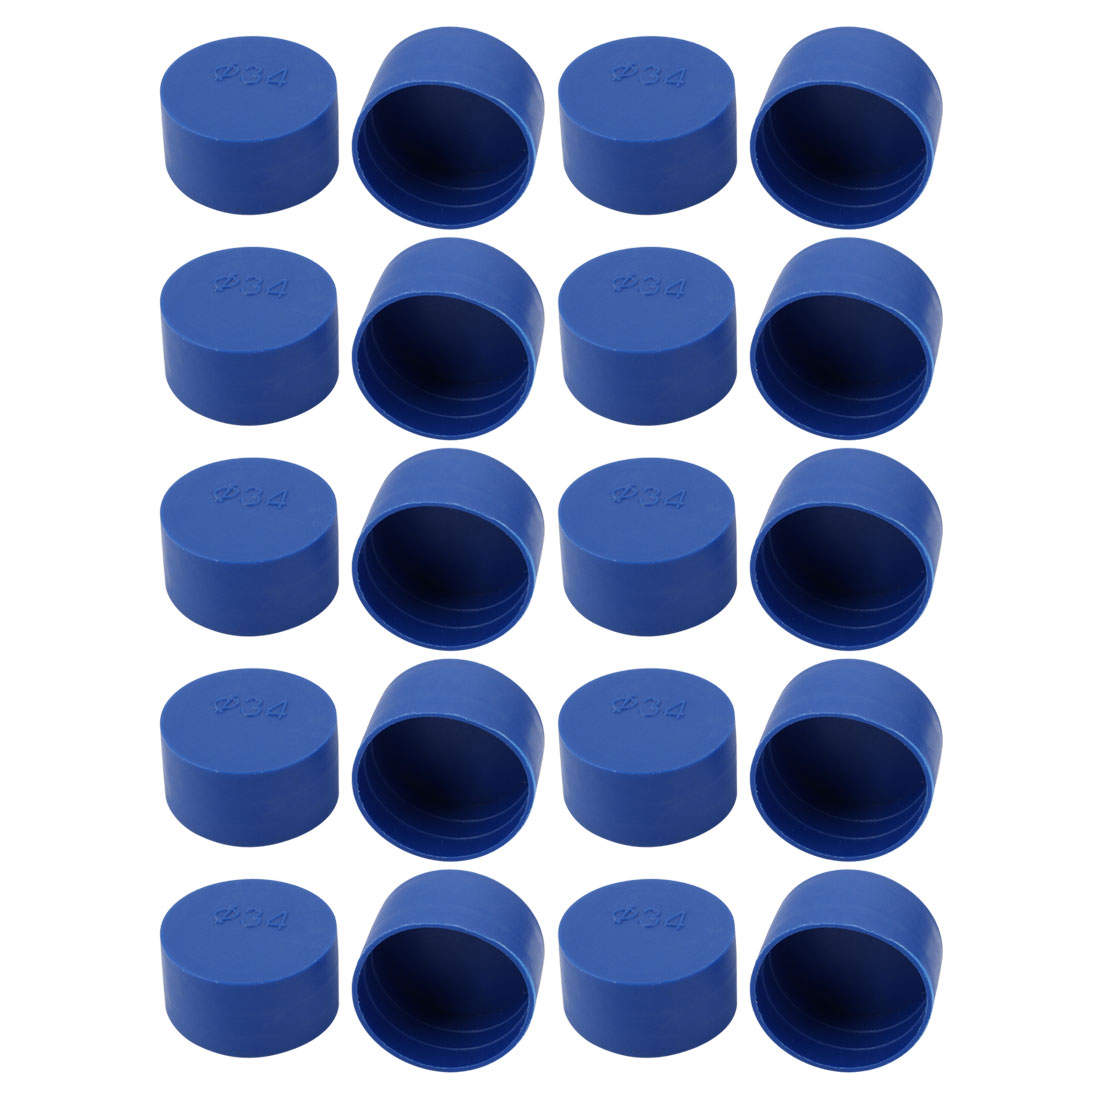 20pc 34mm Dia Interne PE Capuchon plastique protecteur filetage vis bleu Tube - image 2 de 2